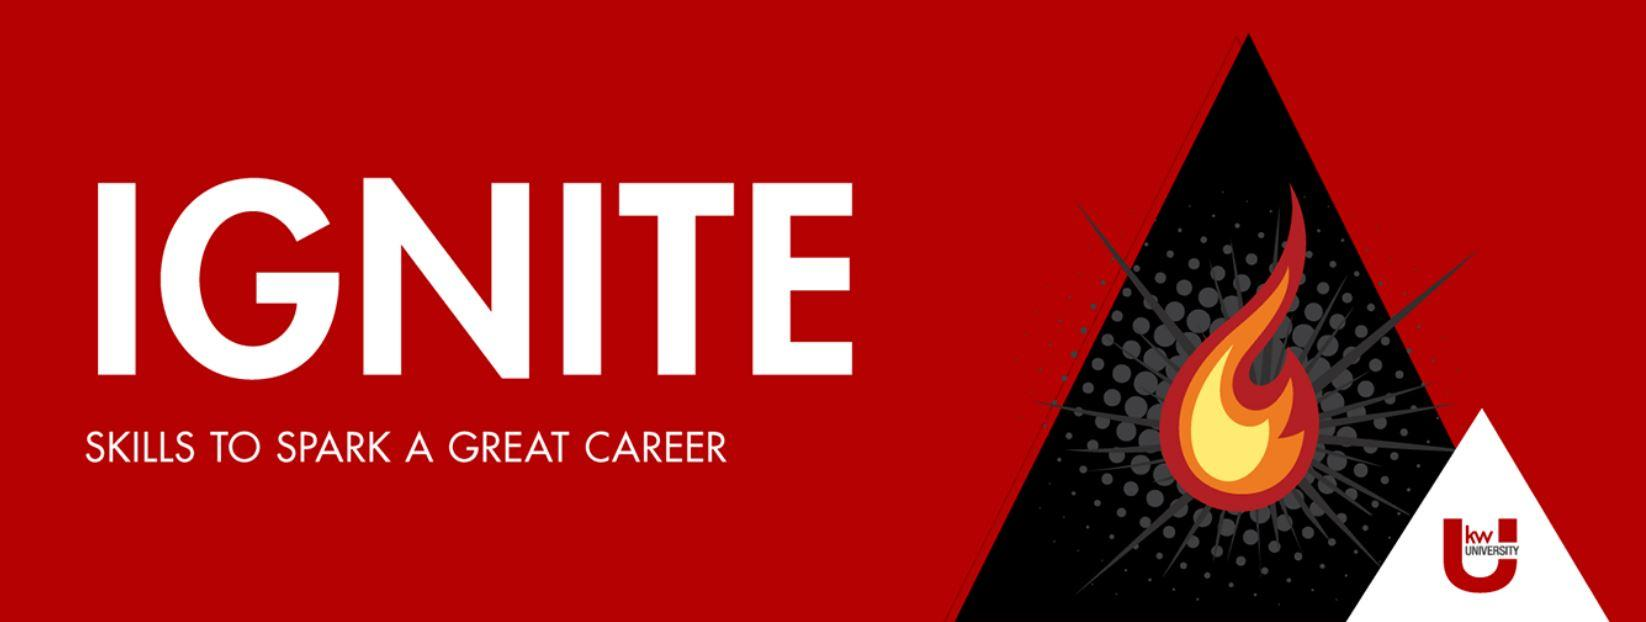 IGNITE: Skills to Spark a Great Career